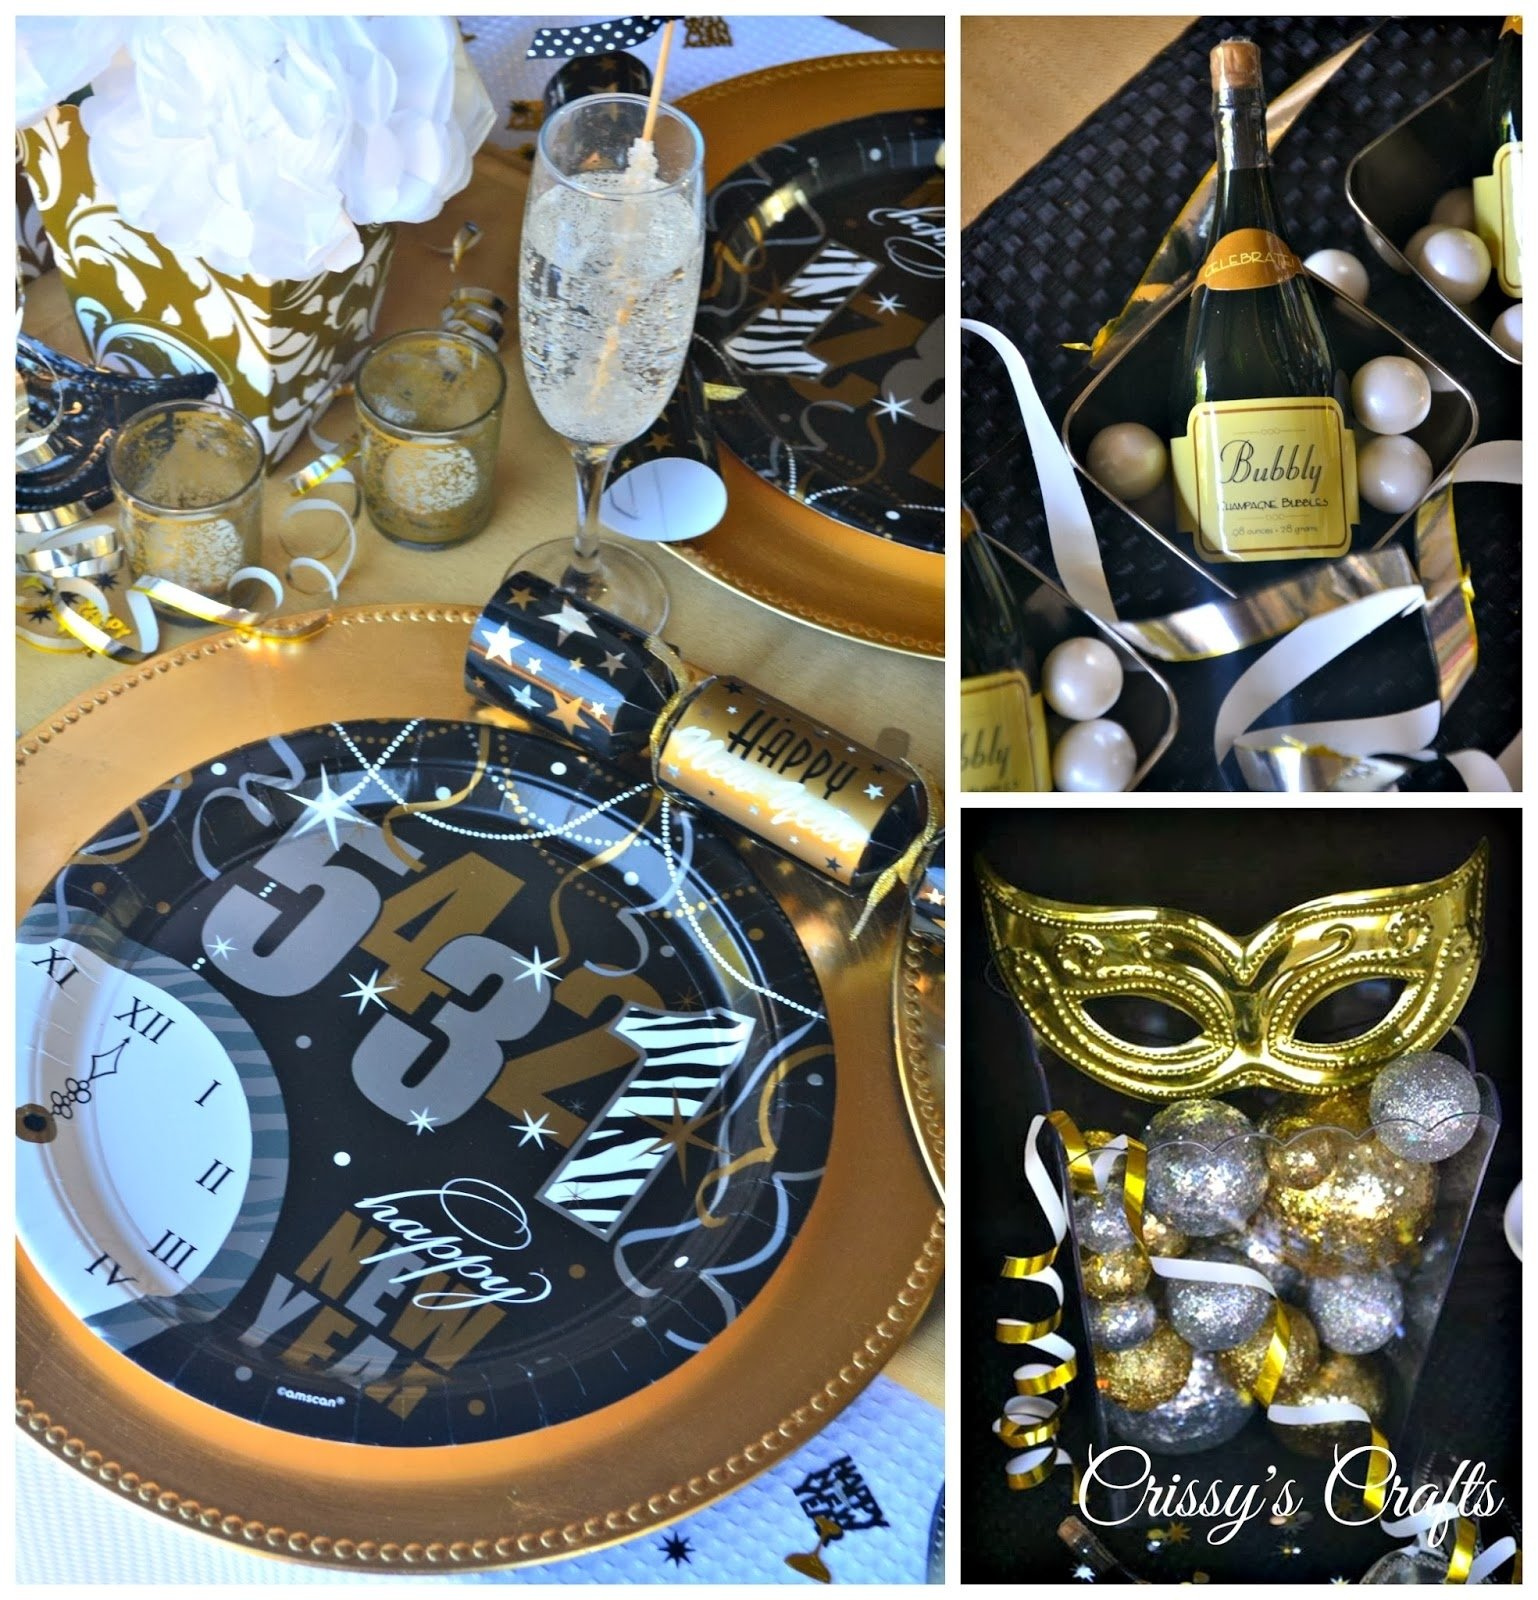 10 Fashionable New Years Eve Party Ideas 2013 crissys crafts new years eve party ideas 1 2021